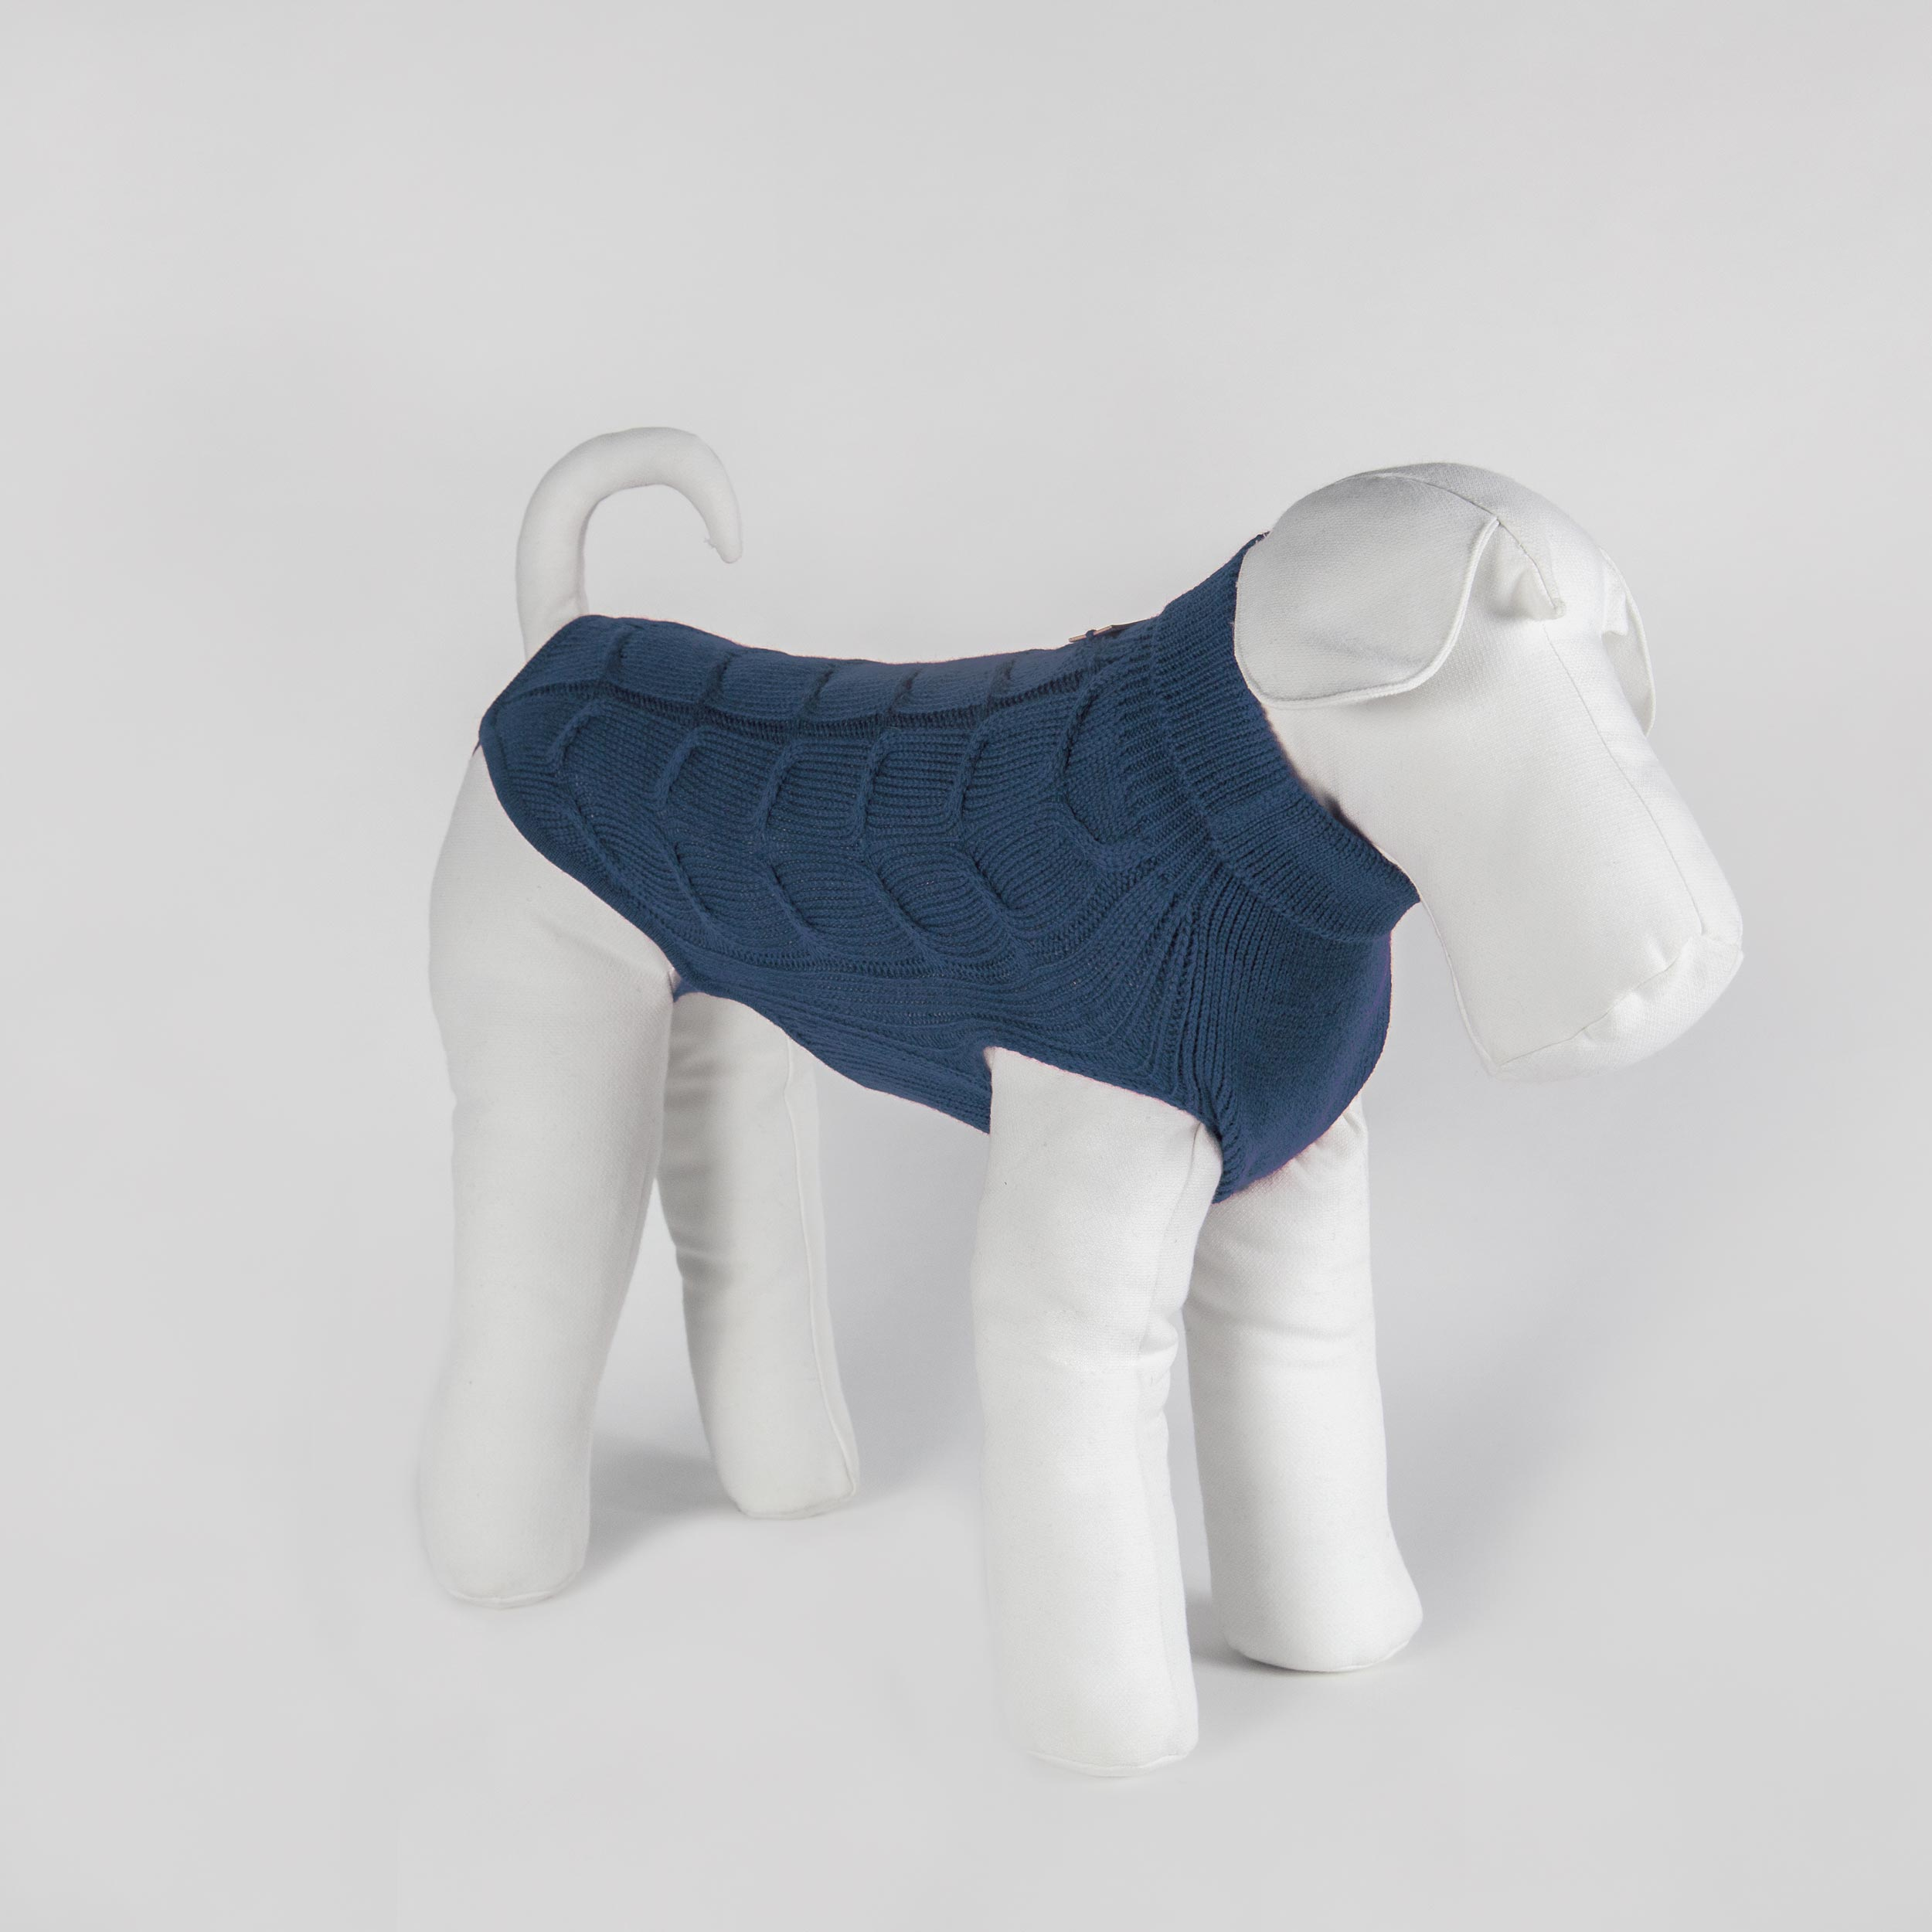 bespoke dog sweater in aviation blue pure wool